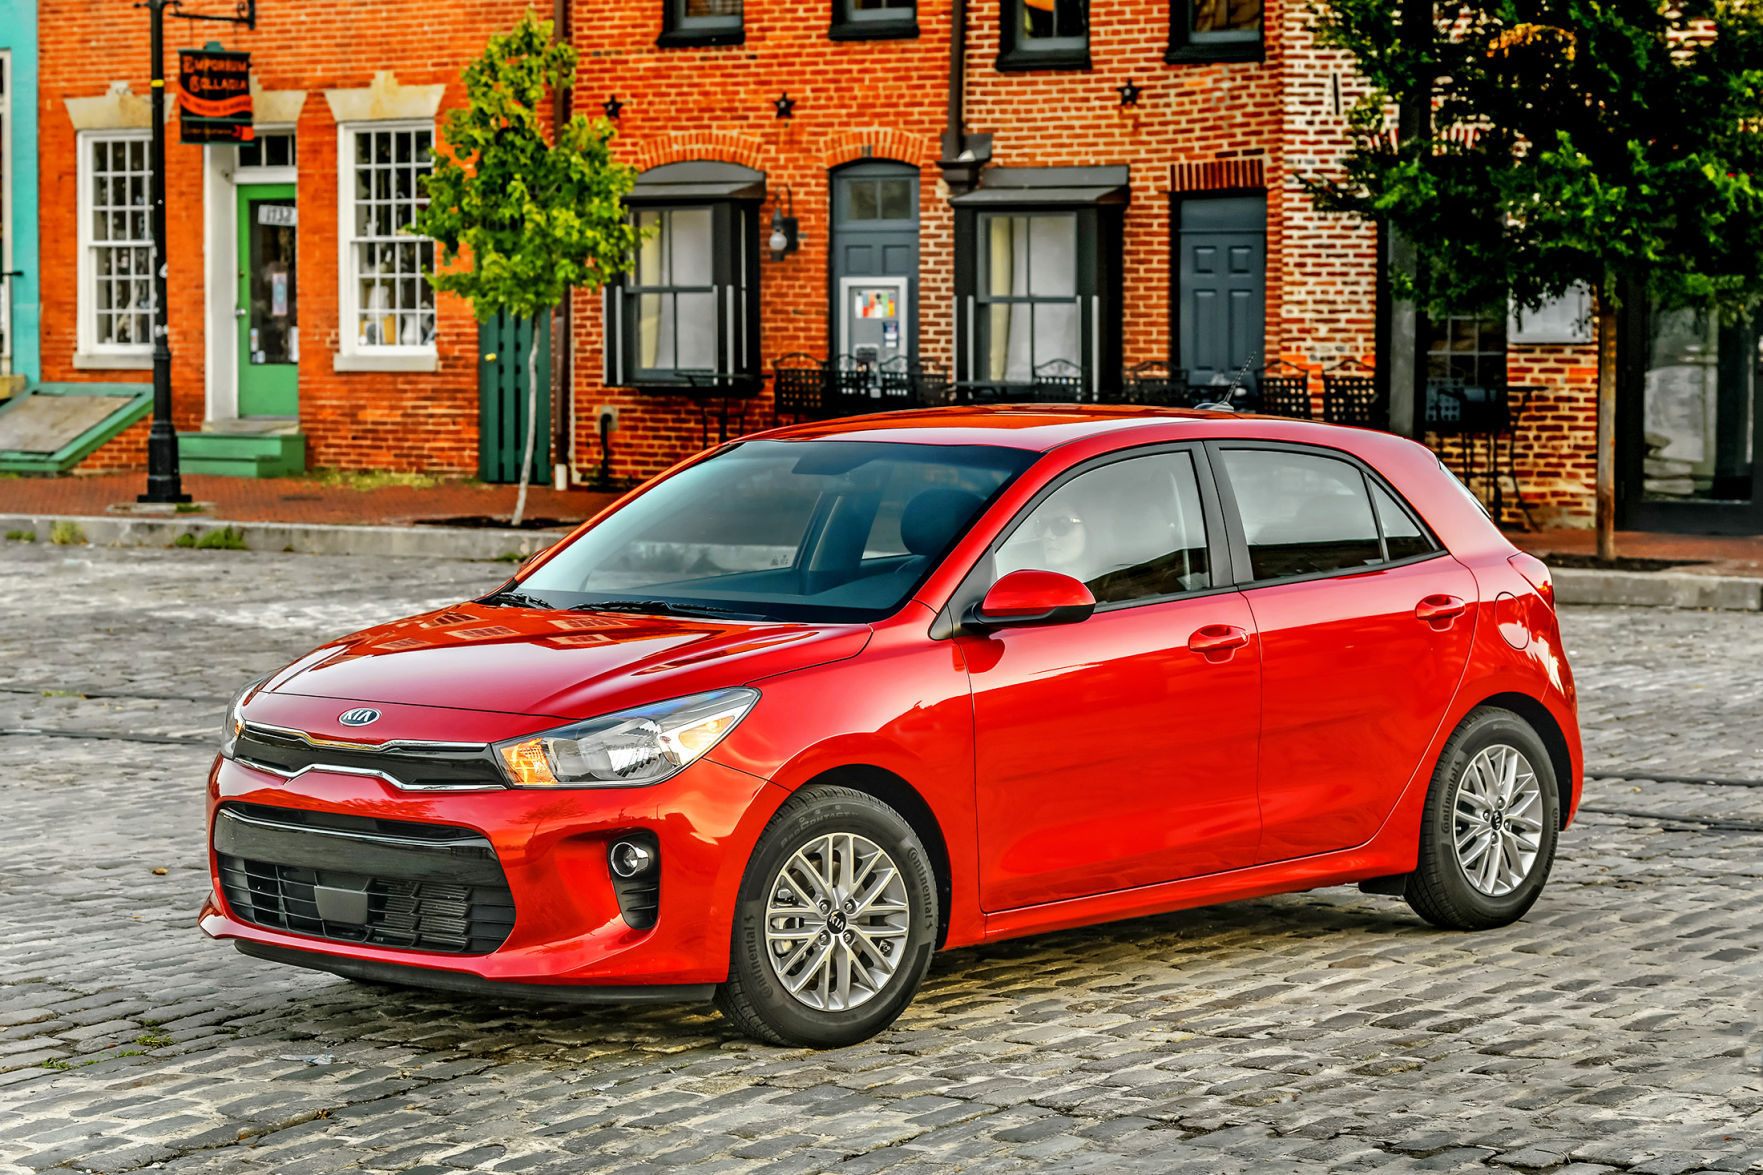 subcompact kia rio enters new generation with quieter ride more rh nwitimes com